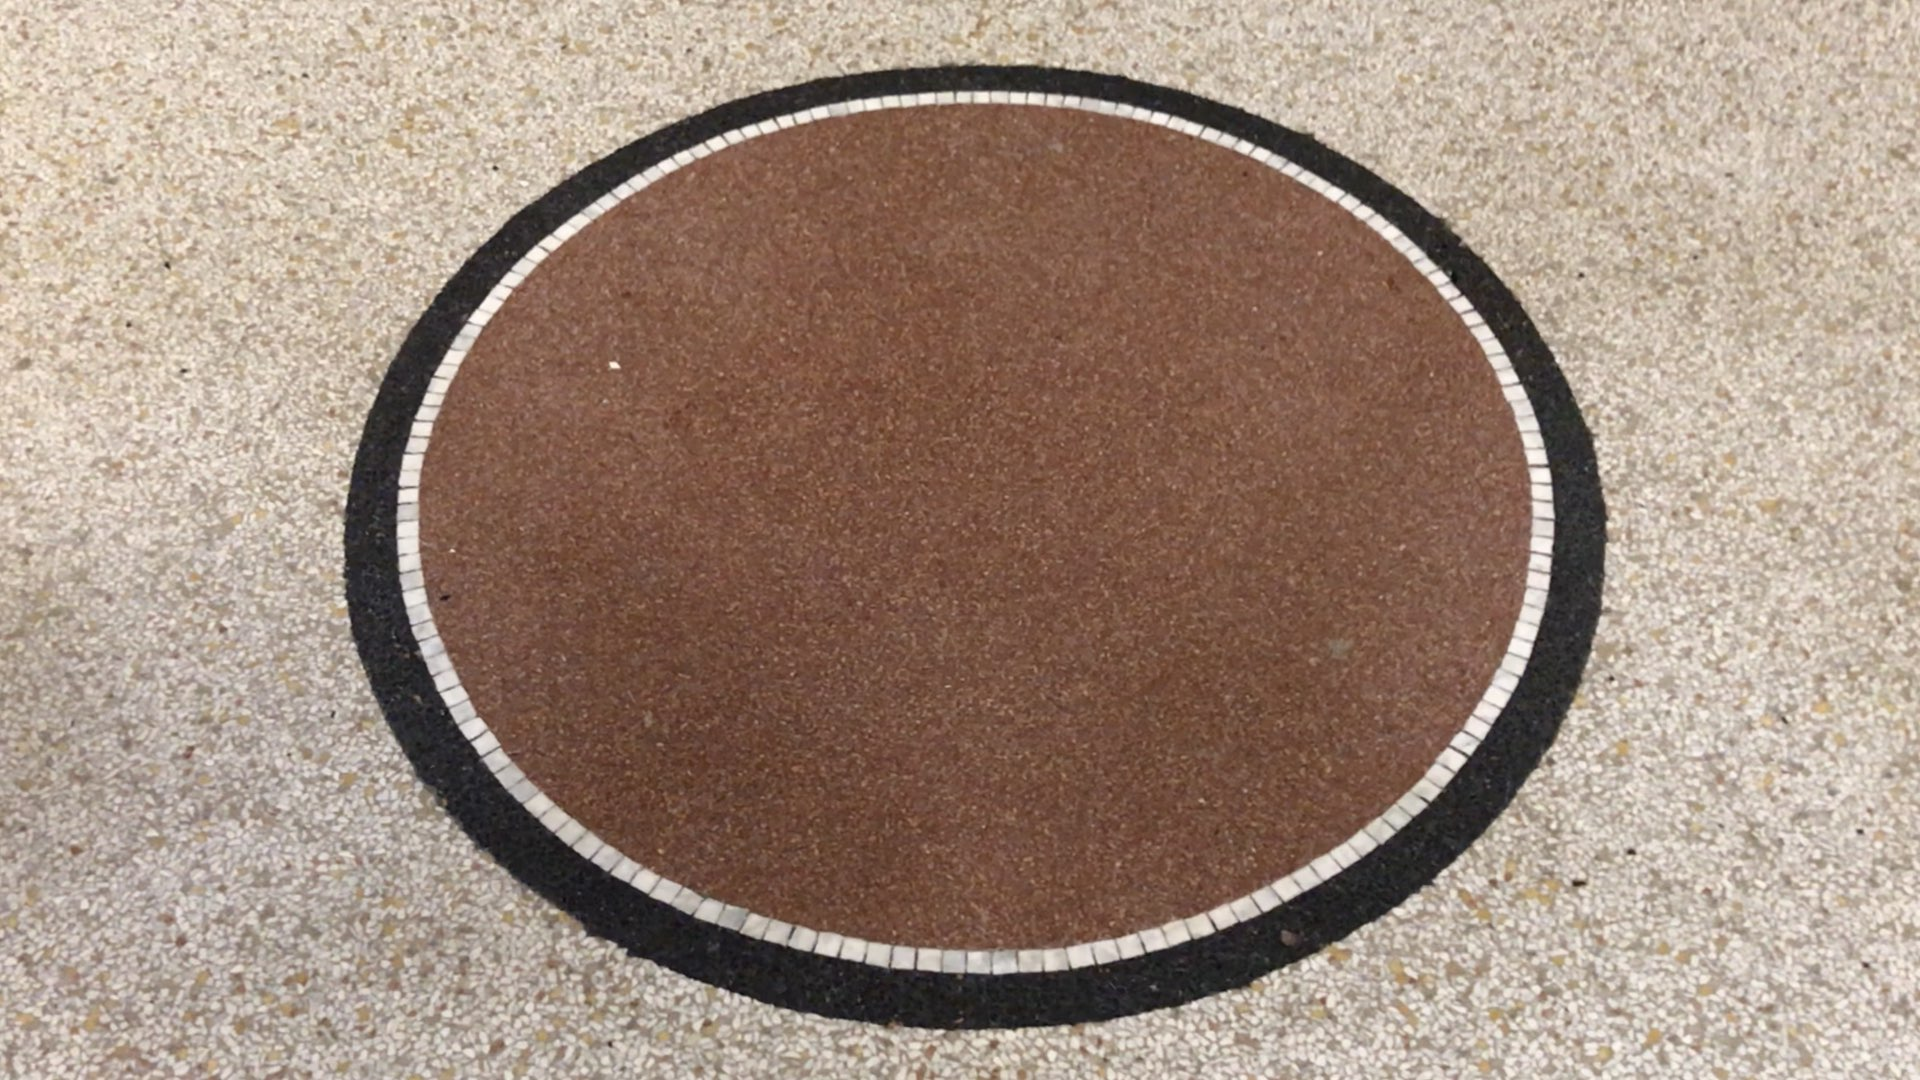 Going-In-Circles-Day-2-Tile-Circle-Circumference-02-Spark-Image.jpeg